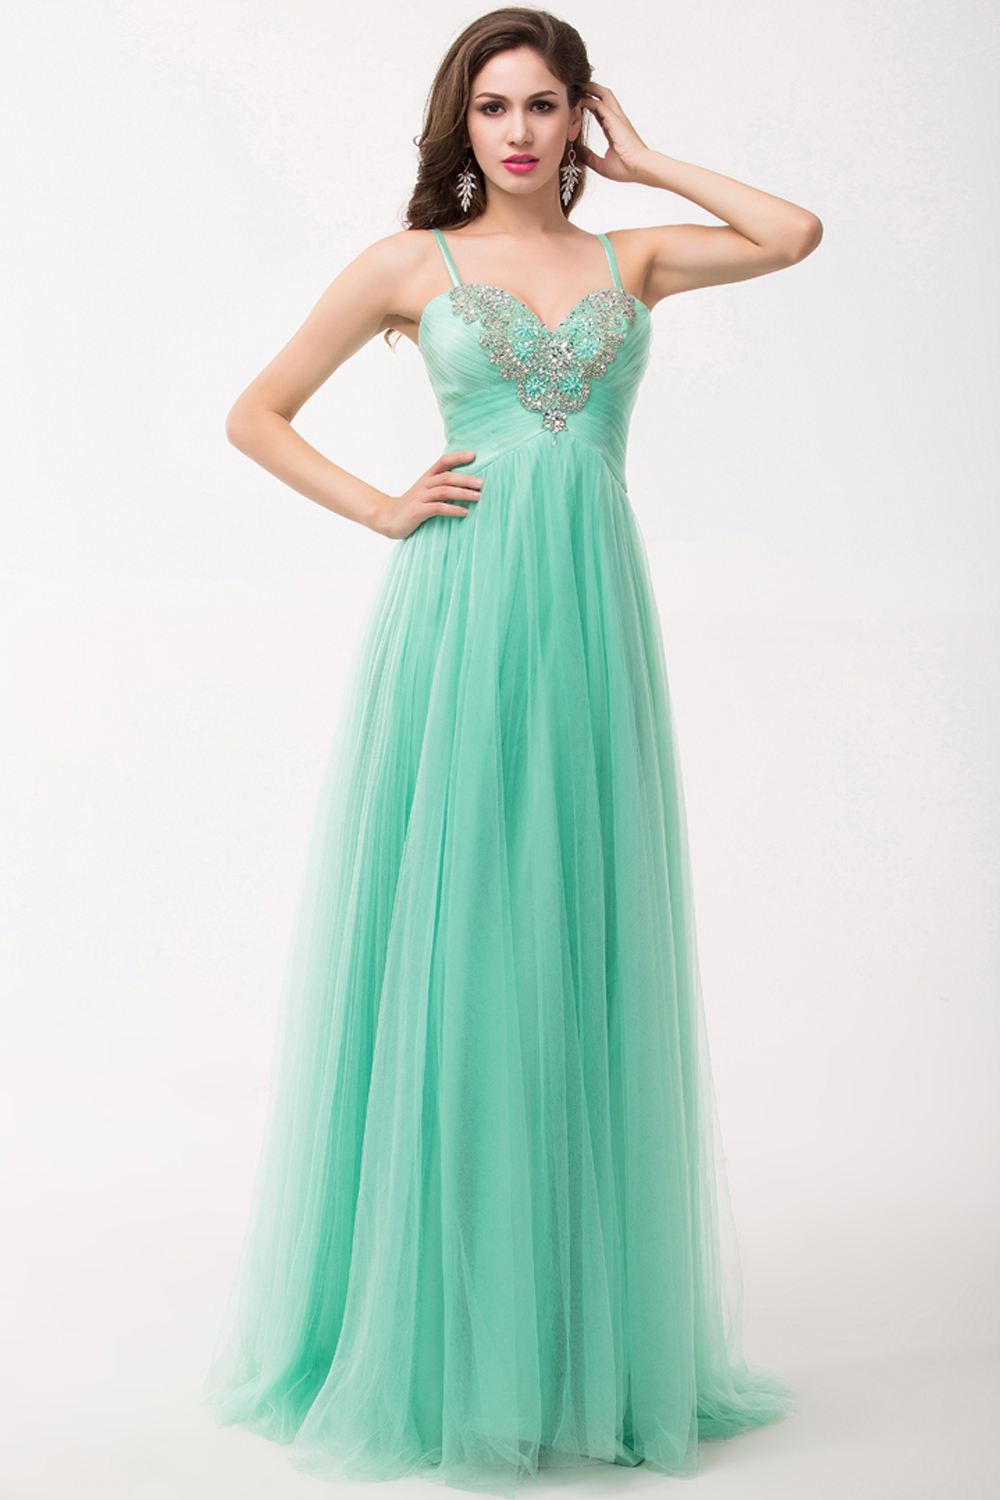 a-line-sweetheart-floor-length-tulle-prom-dress-beaded